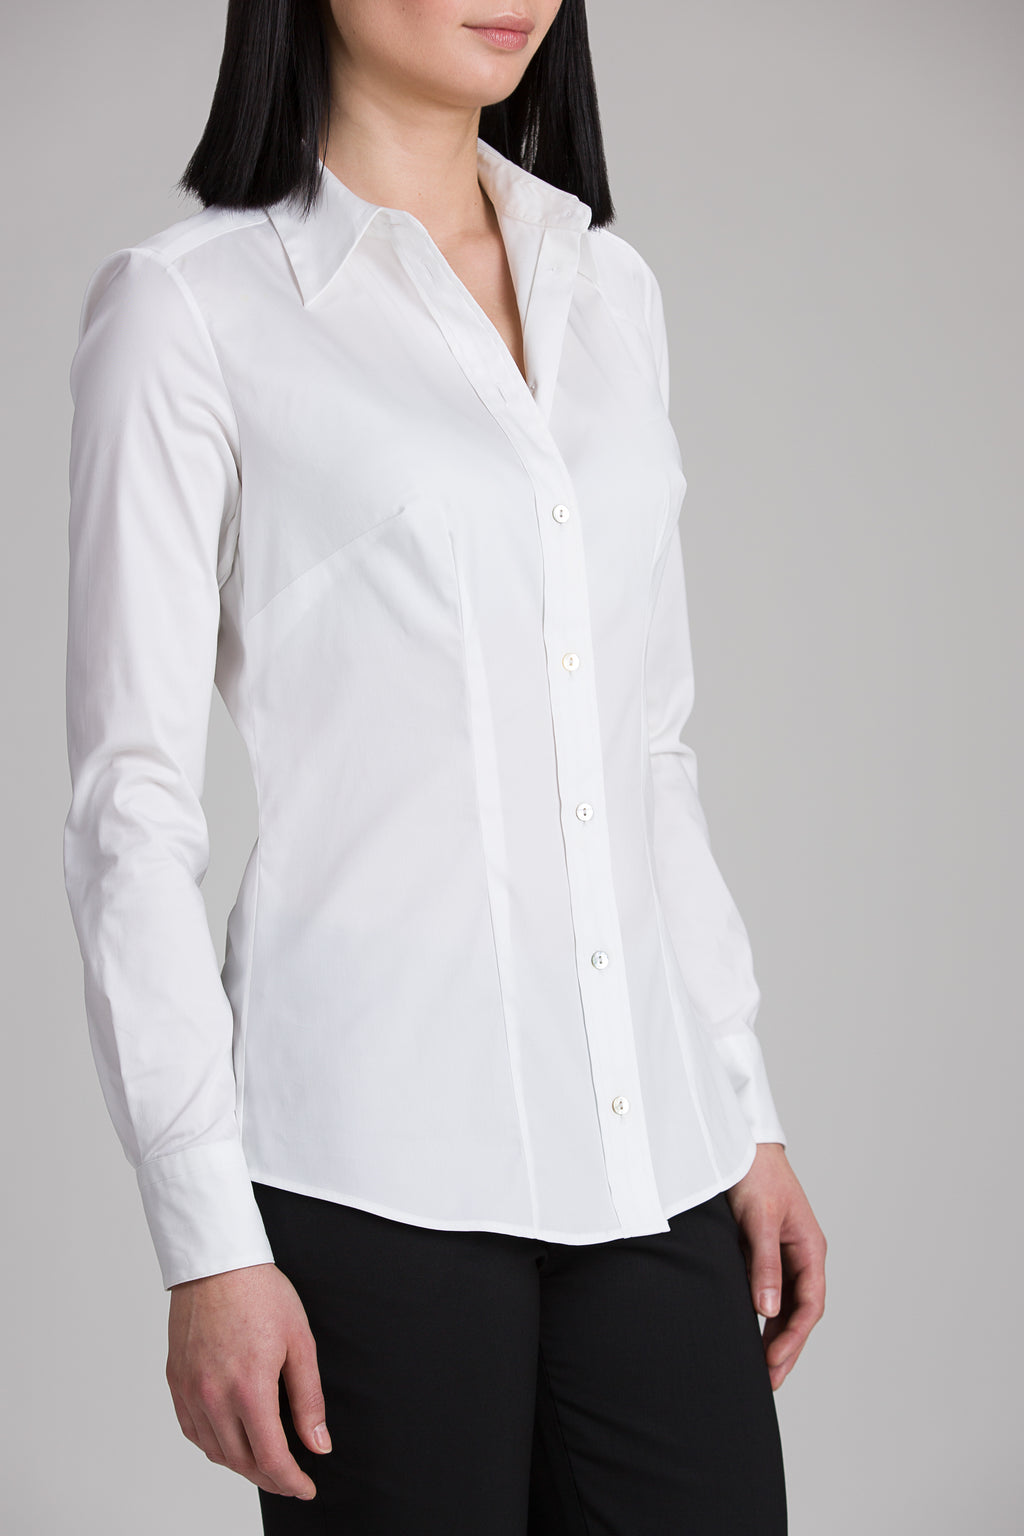 SIF ORIGINAL SLIM FIT SHIRT